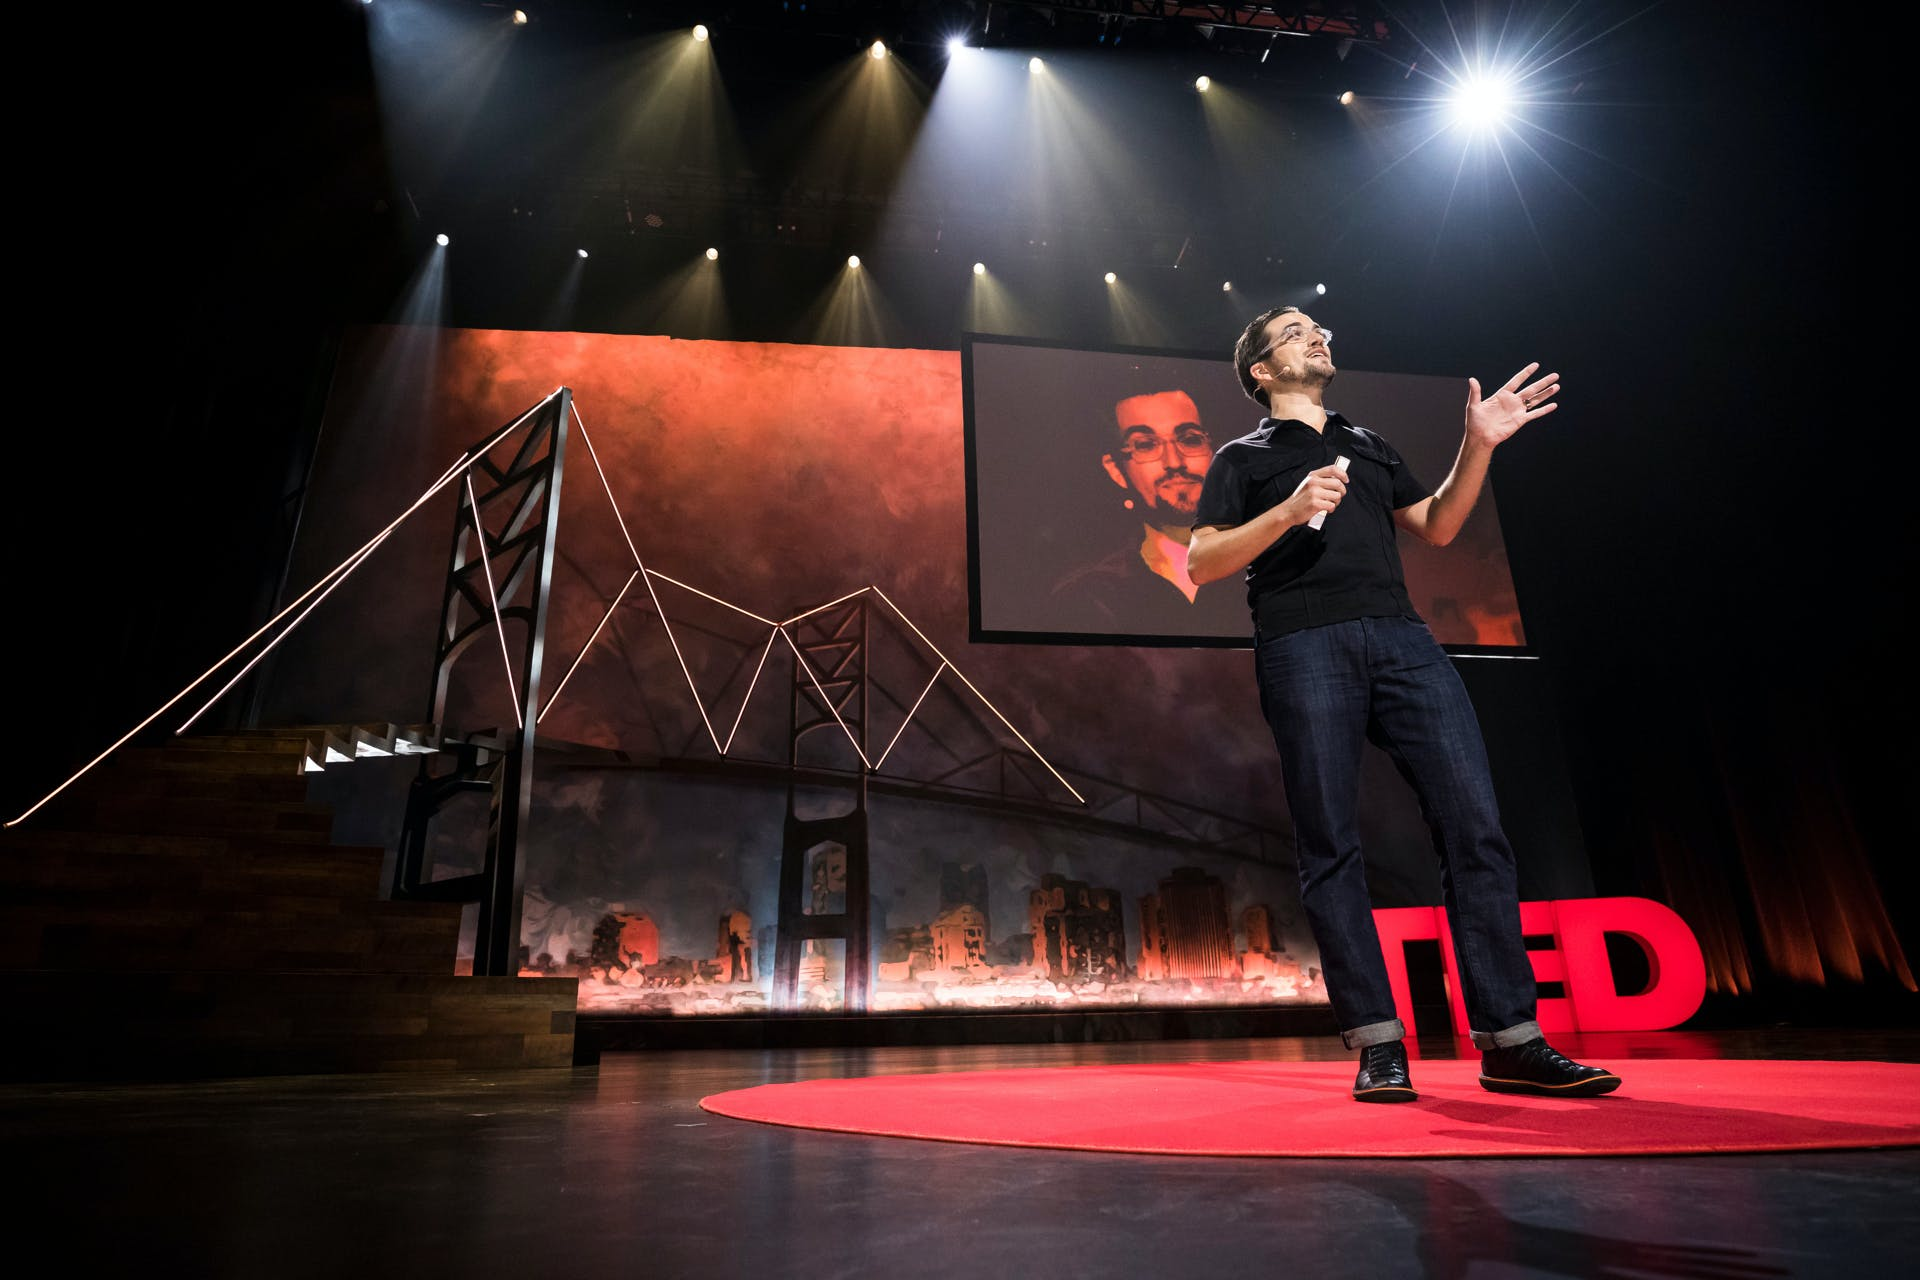 John Cary S Recent Ted Talk Champions Dignity In Design